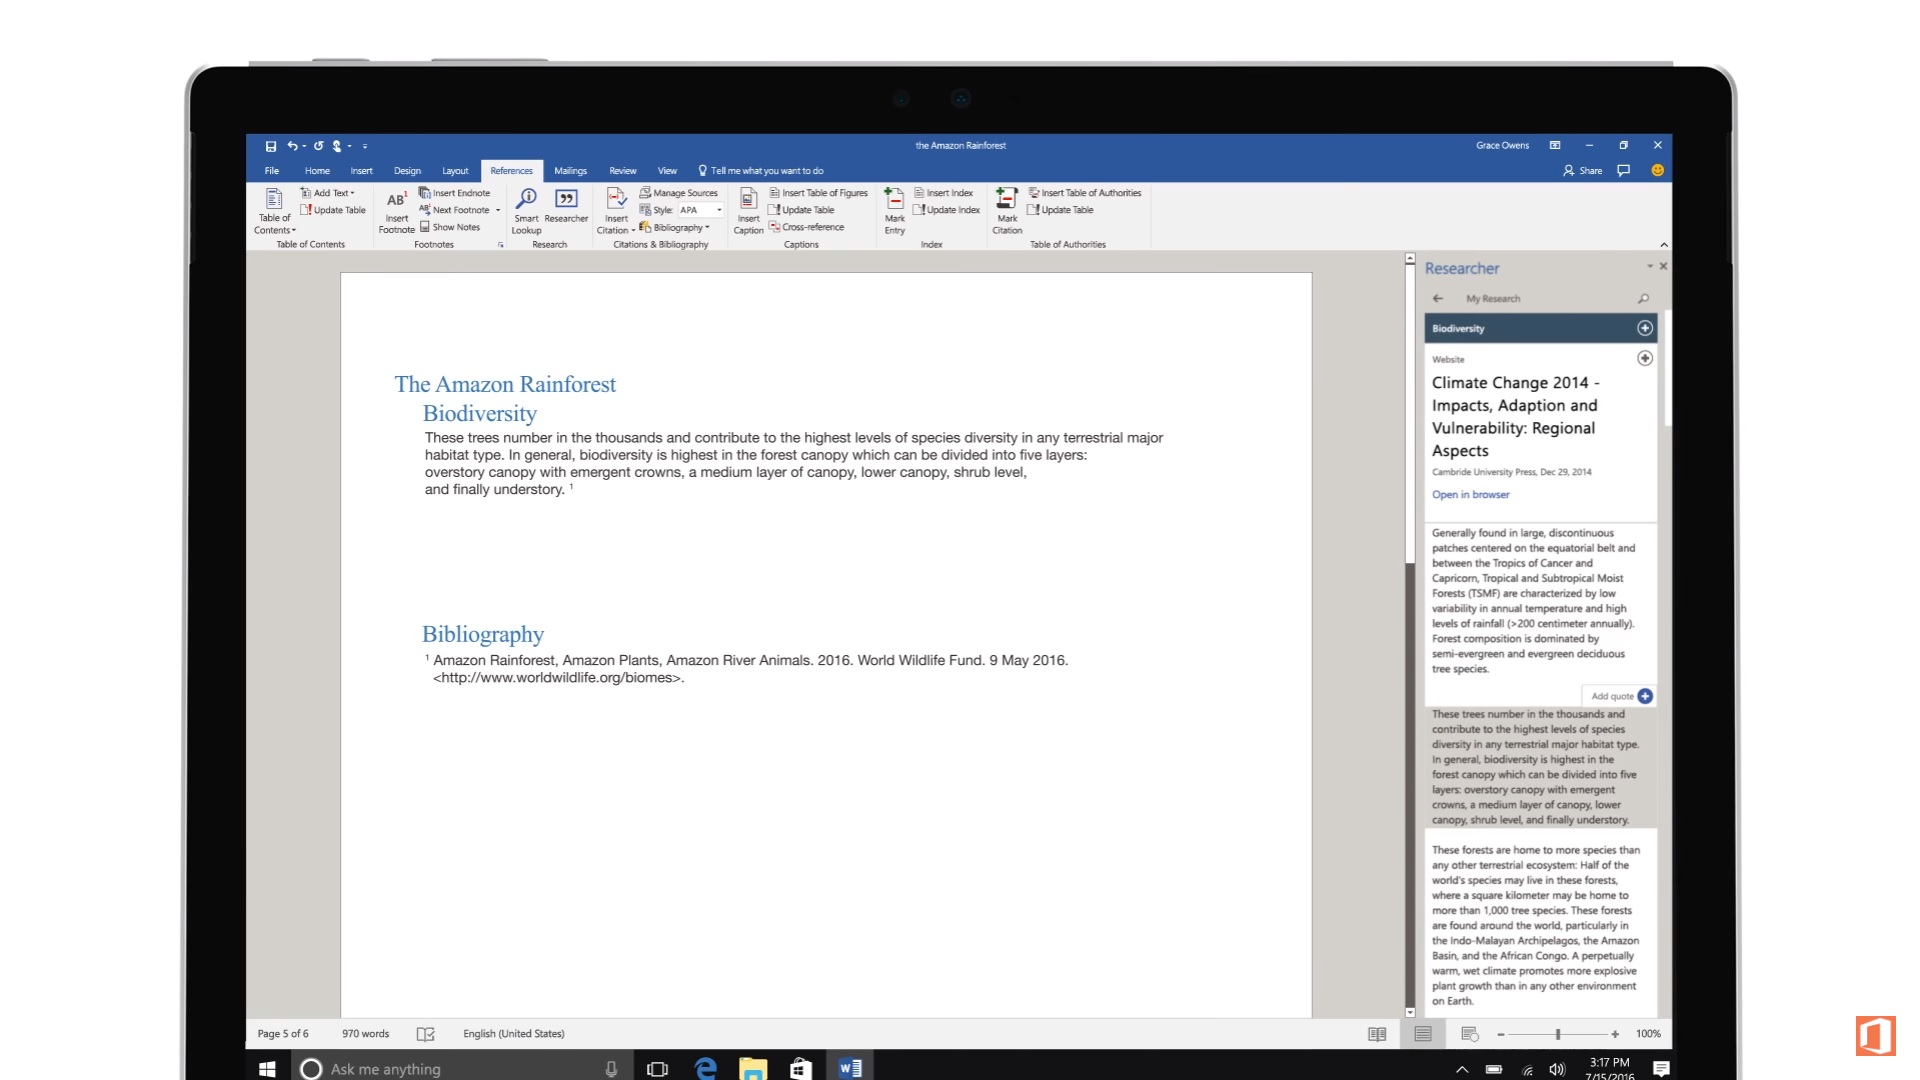 Microsoft launches Researcher and Editor in Word, Zoom in